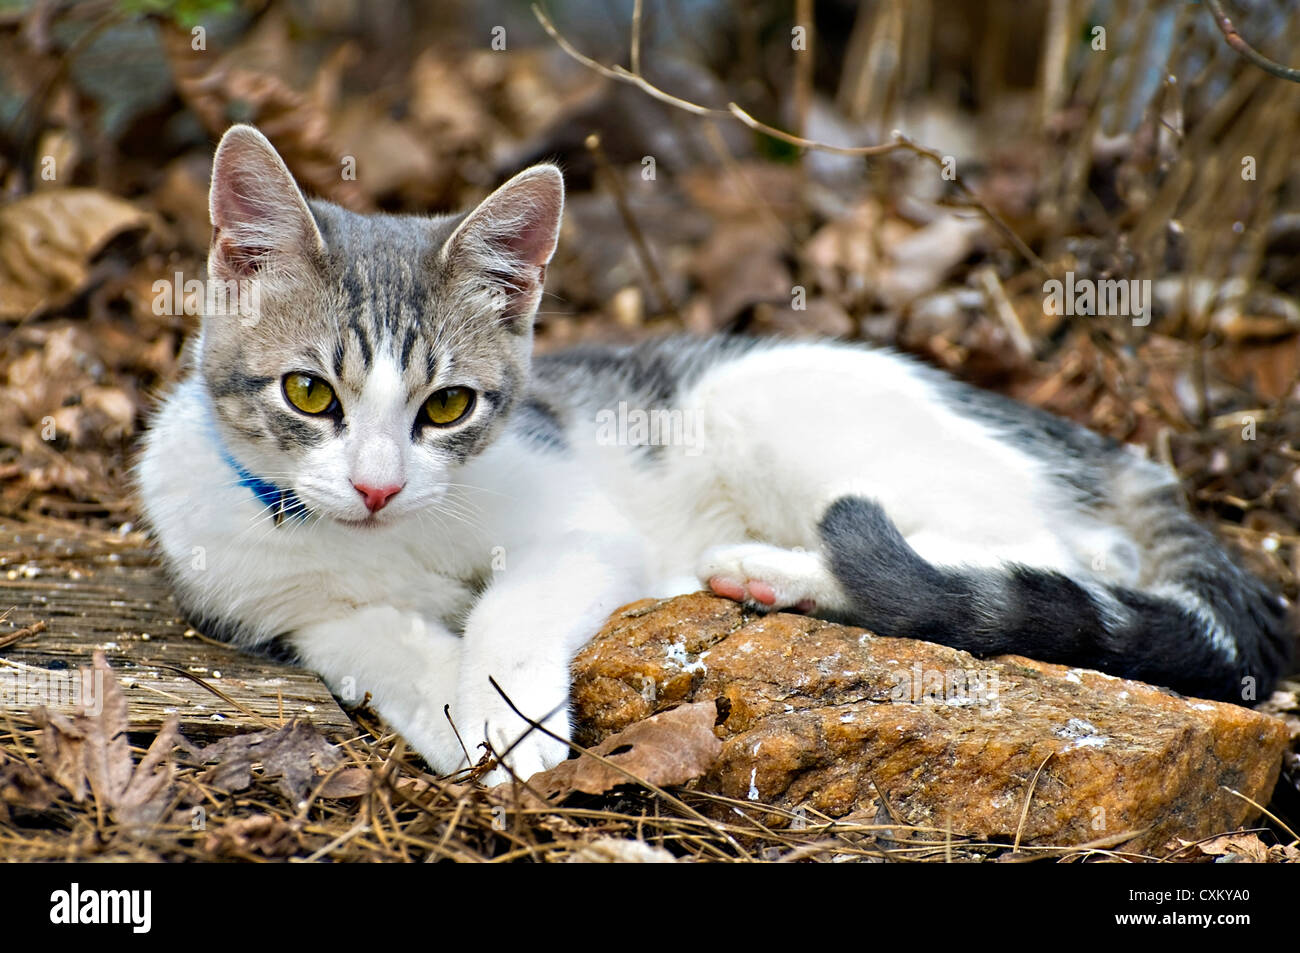 A cute gray and white kitten outside beside a rock. - Stock Image